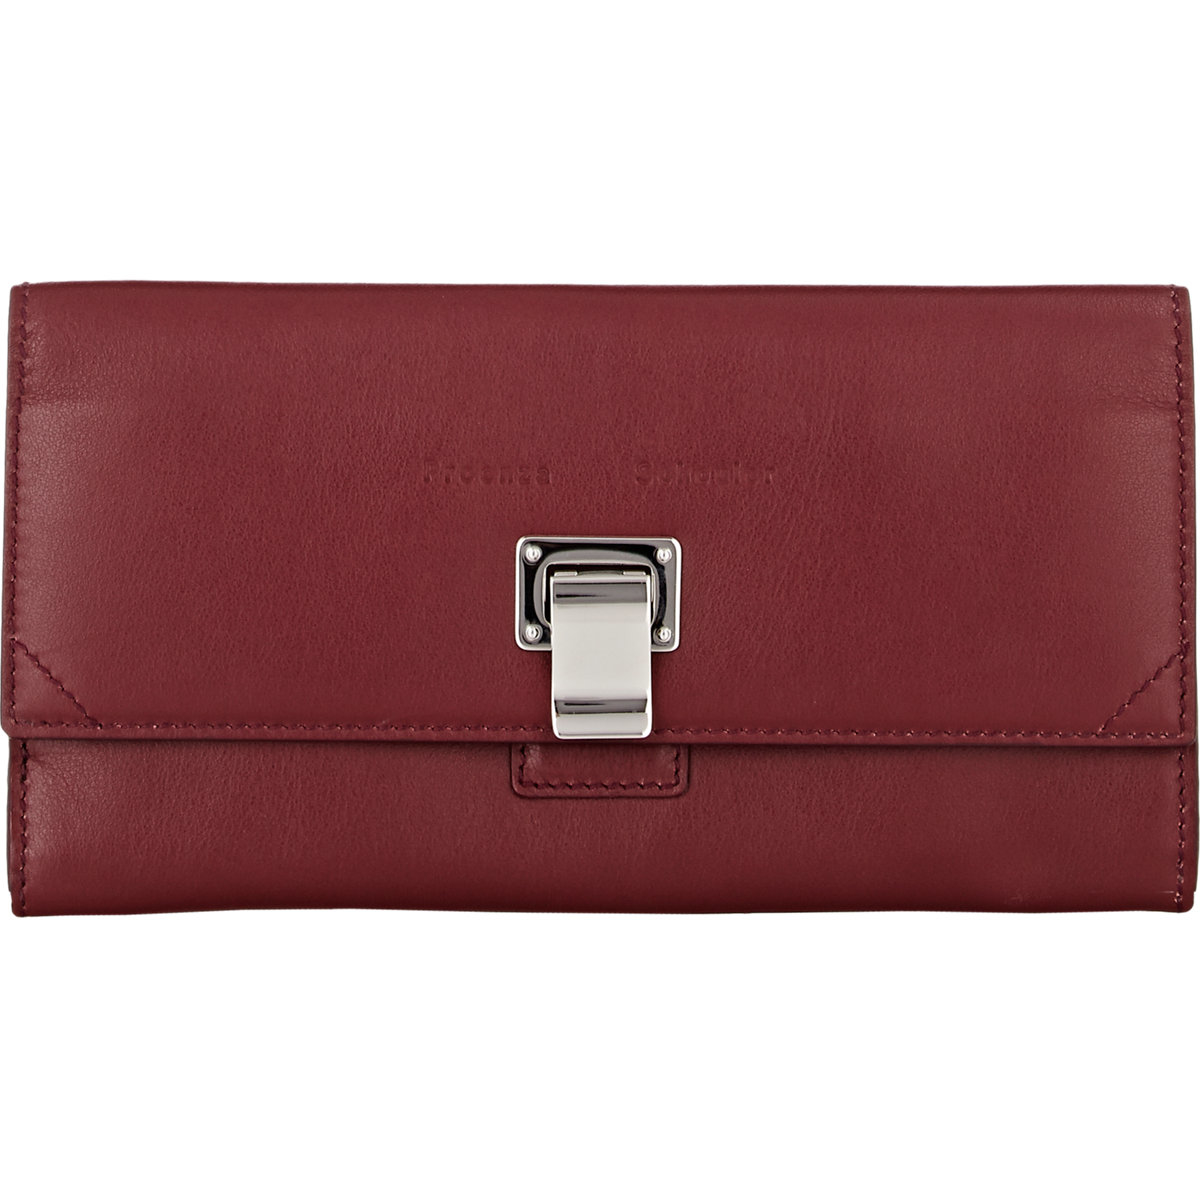 Continental Leather Wallet Proenza Schouler